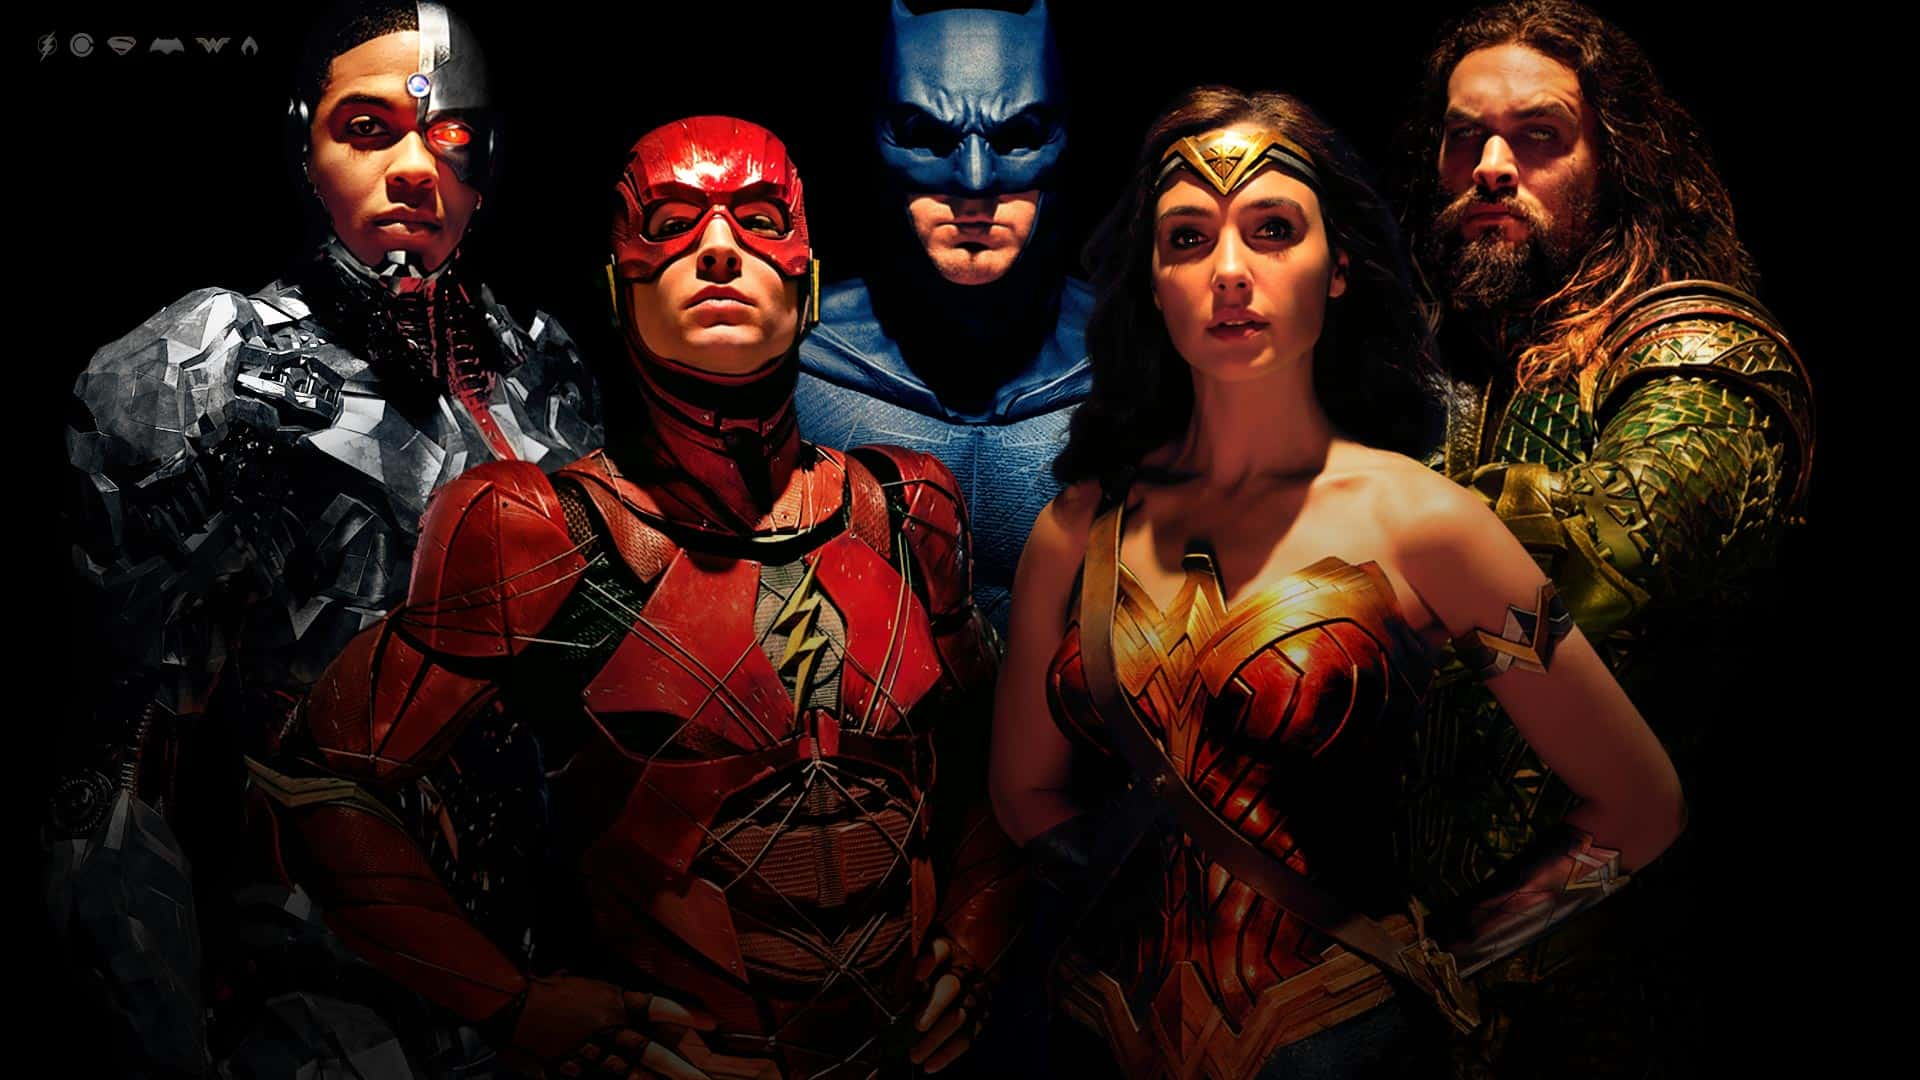 Wallpaper Justice League 2017 Movies Flash Superman: 'Justice League' Is The Lowest Grossing DCEU Movie